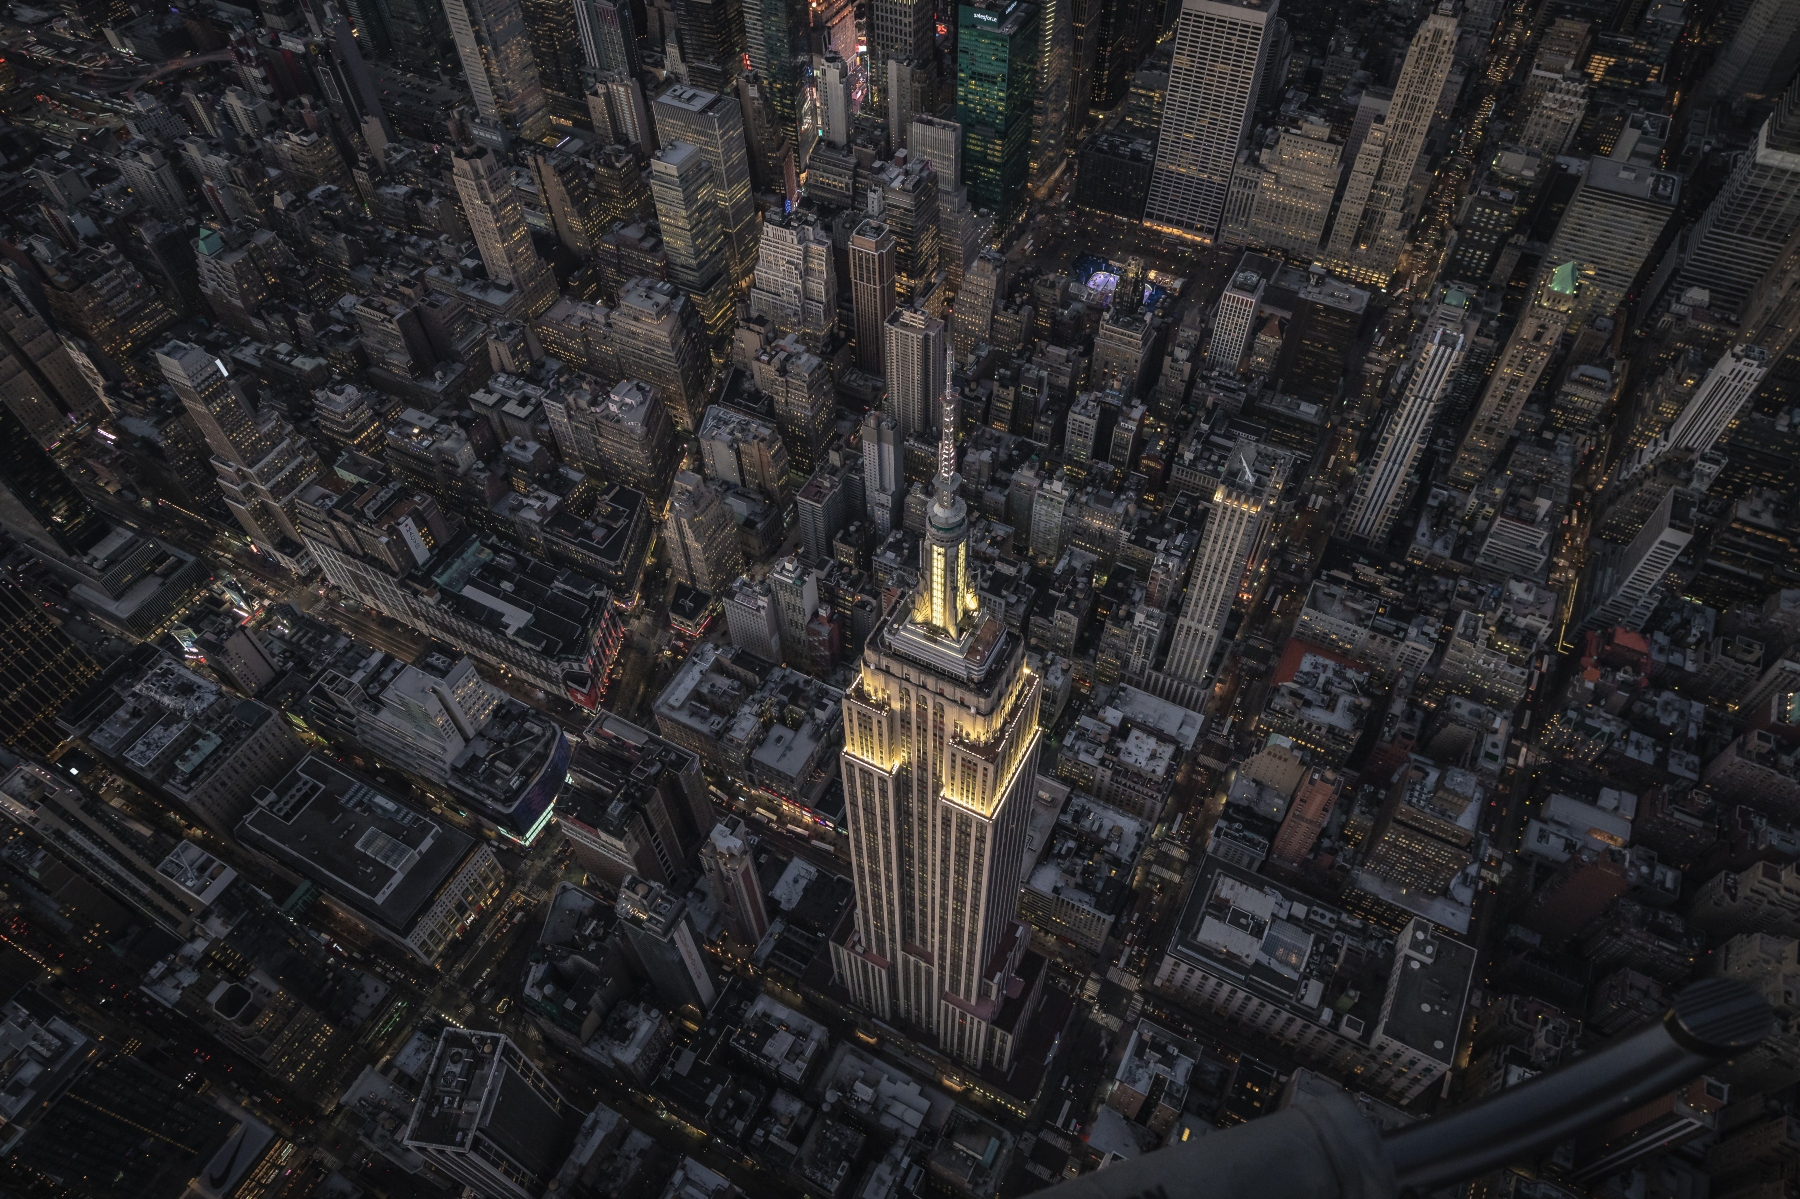 Empire State Building  Taken with Sony a7iii